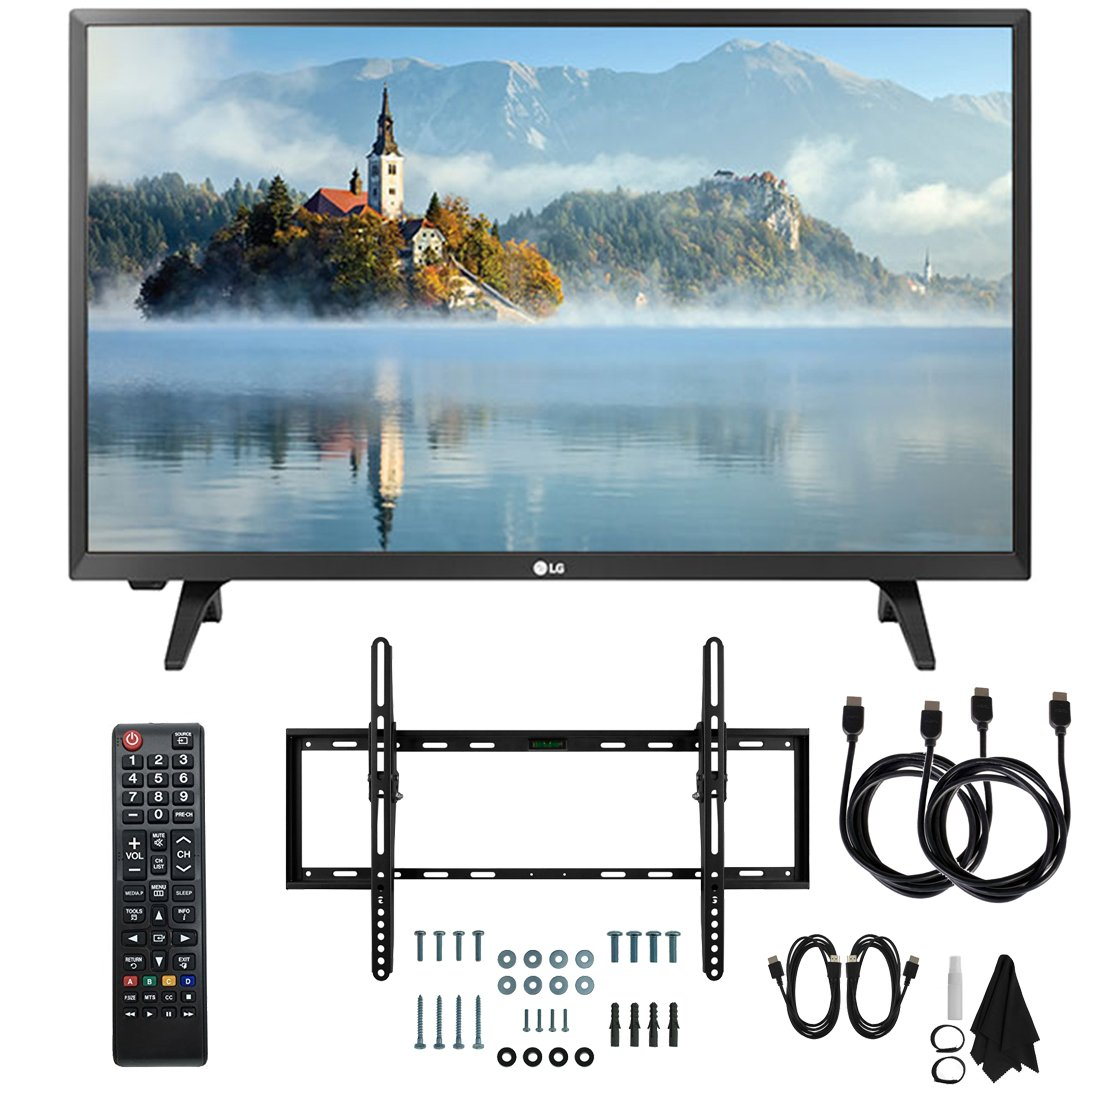 LG 28LJ430B-PU 28'' Class HD 720p LED TV (2017 Model) with Slim Flat Wall Mount Kit and Two (2) 6 Foot HDMI Cables Ultimate Bundle by LG